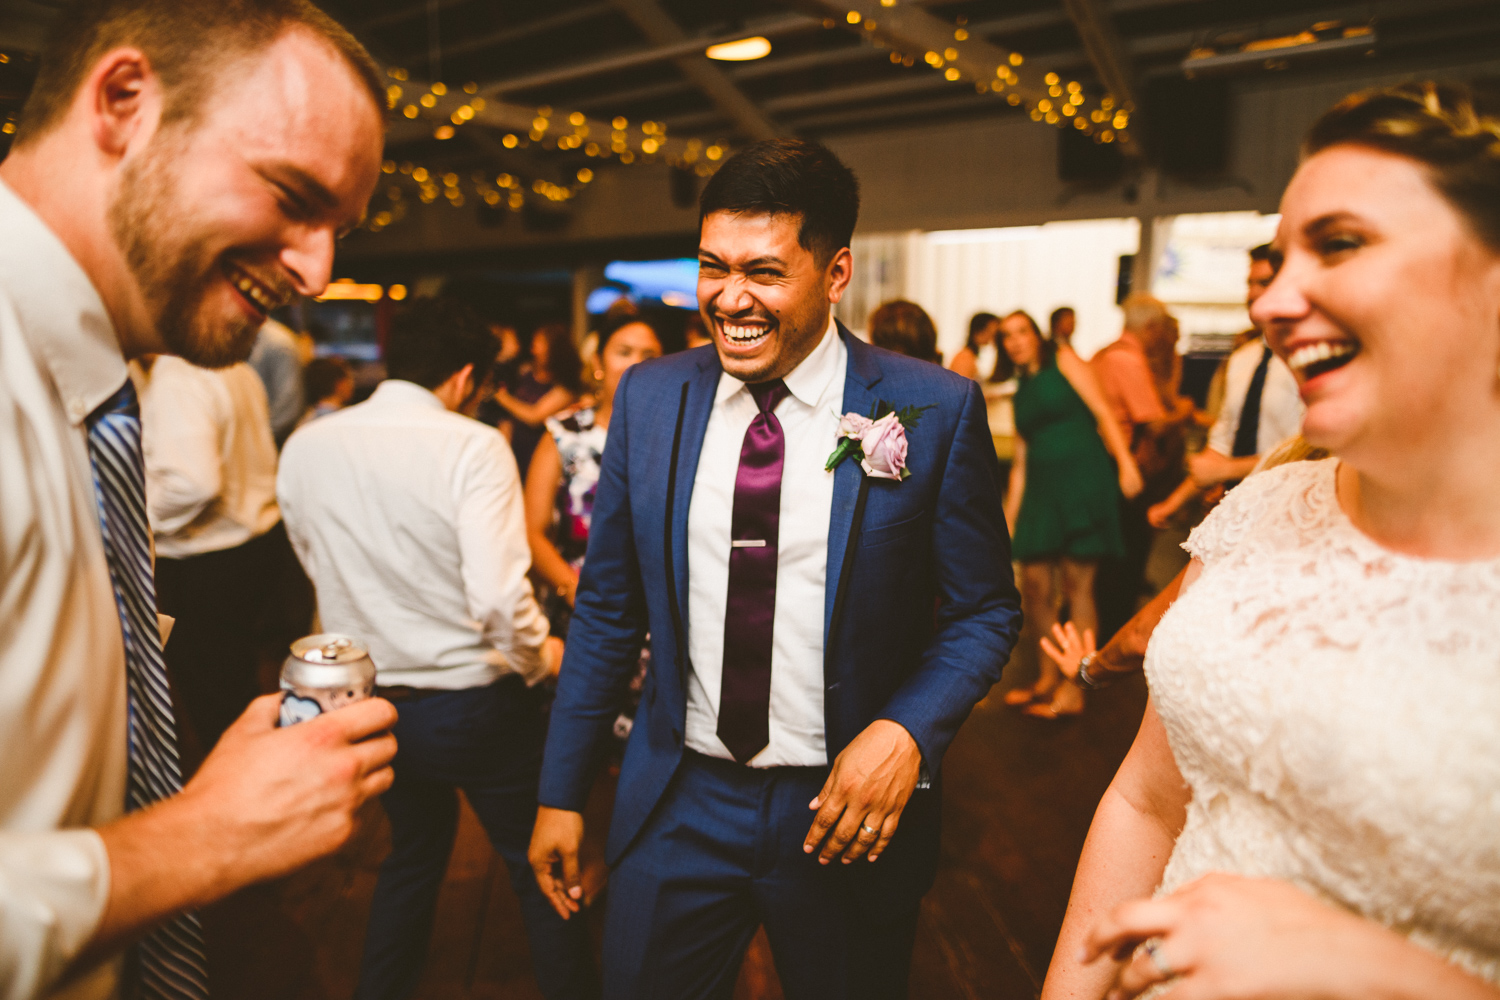 017 - bride and groom dance and laugh with guests at their wedding in washington dc.jpg